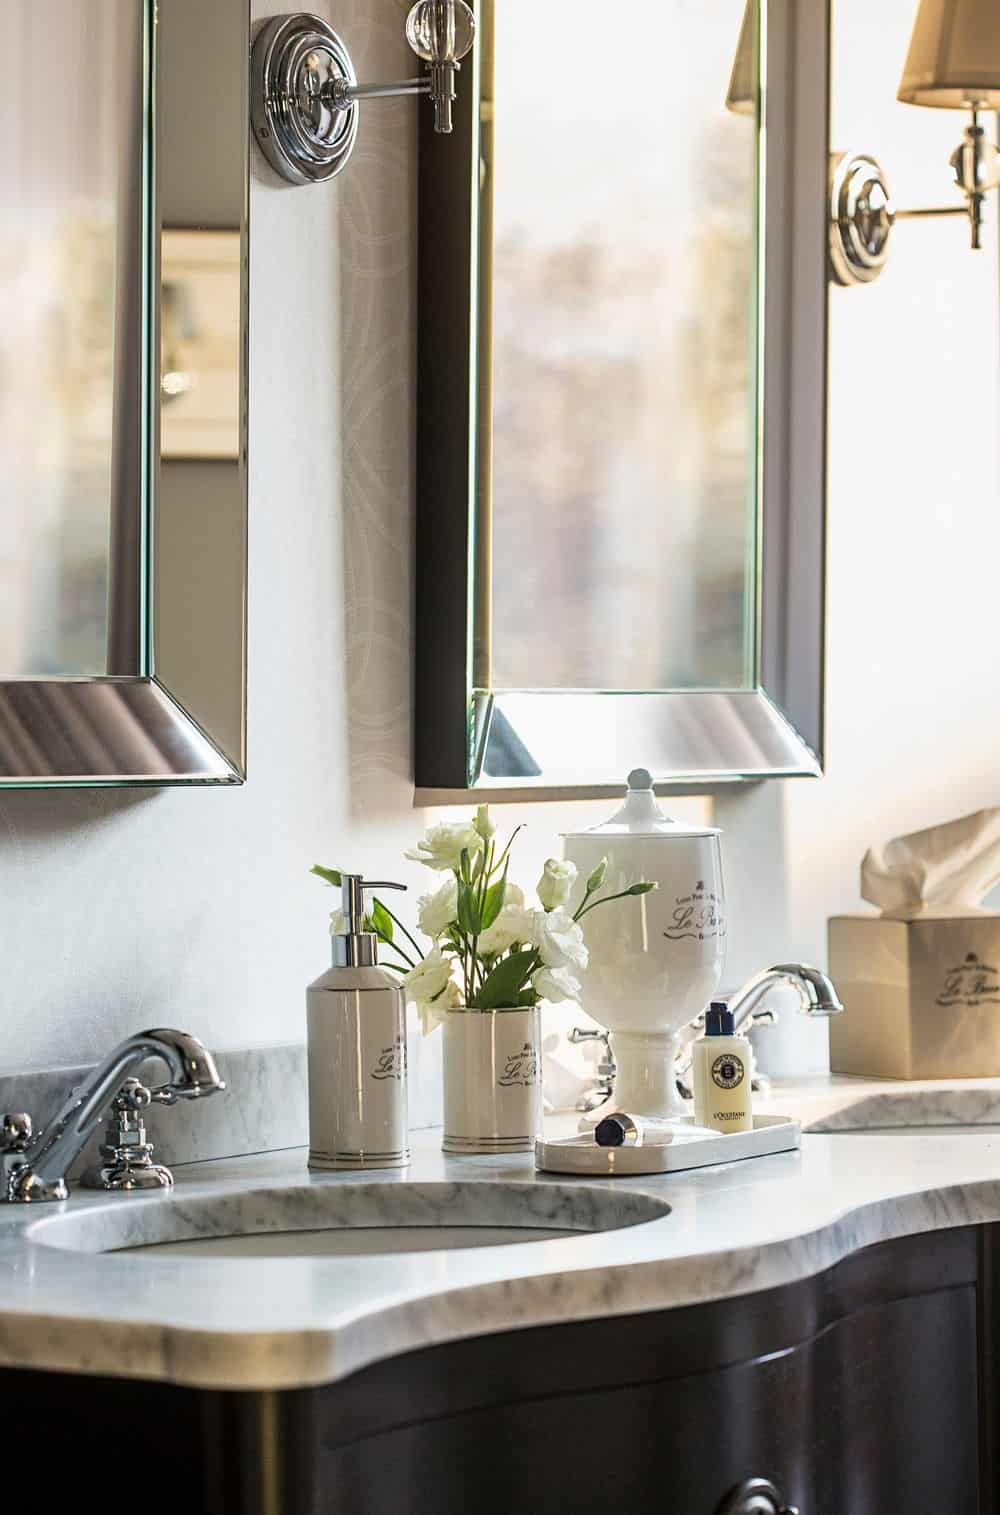 175 Traditional Master Bathroom Ideas For 2019